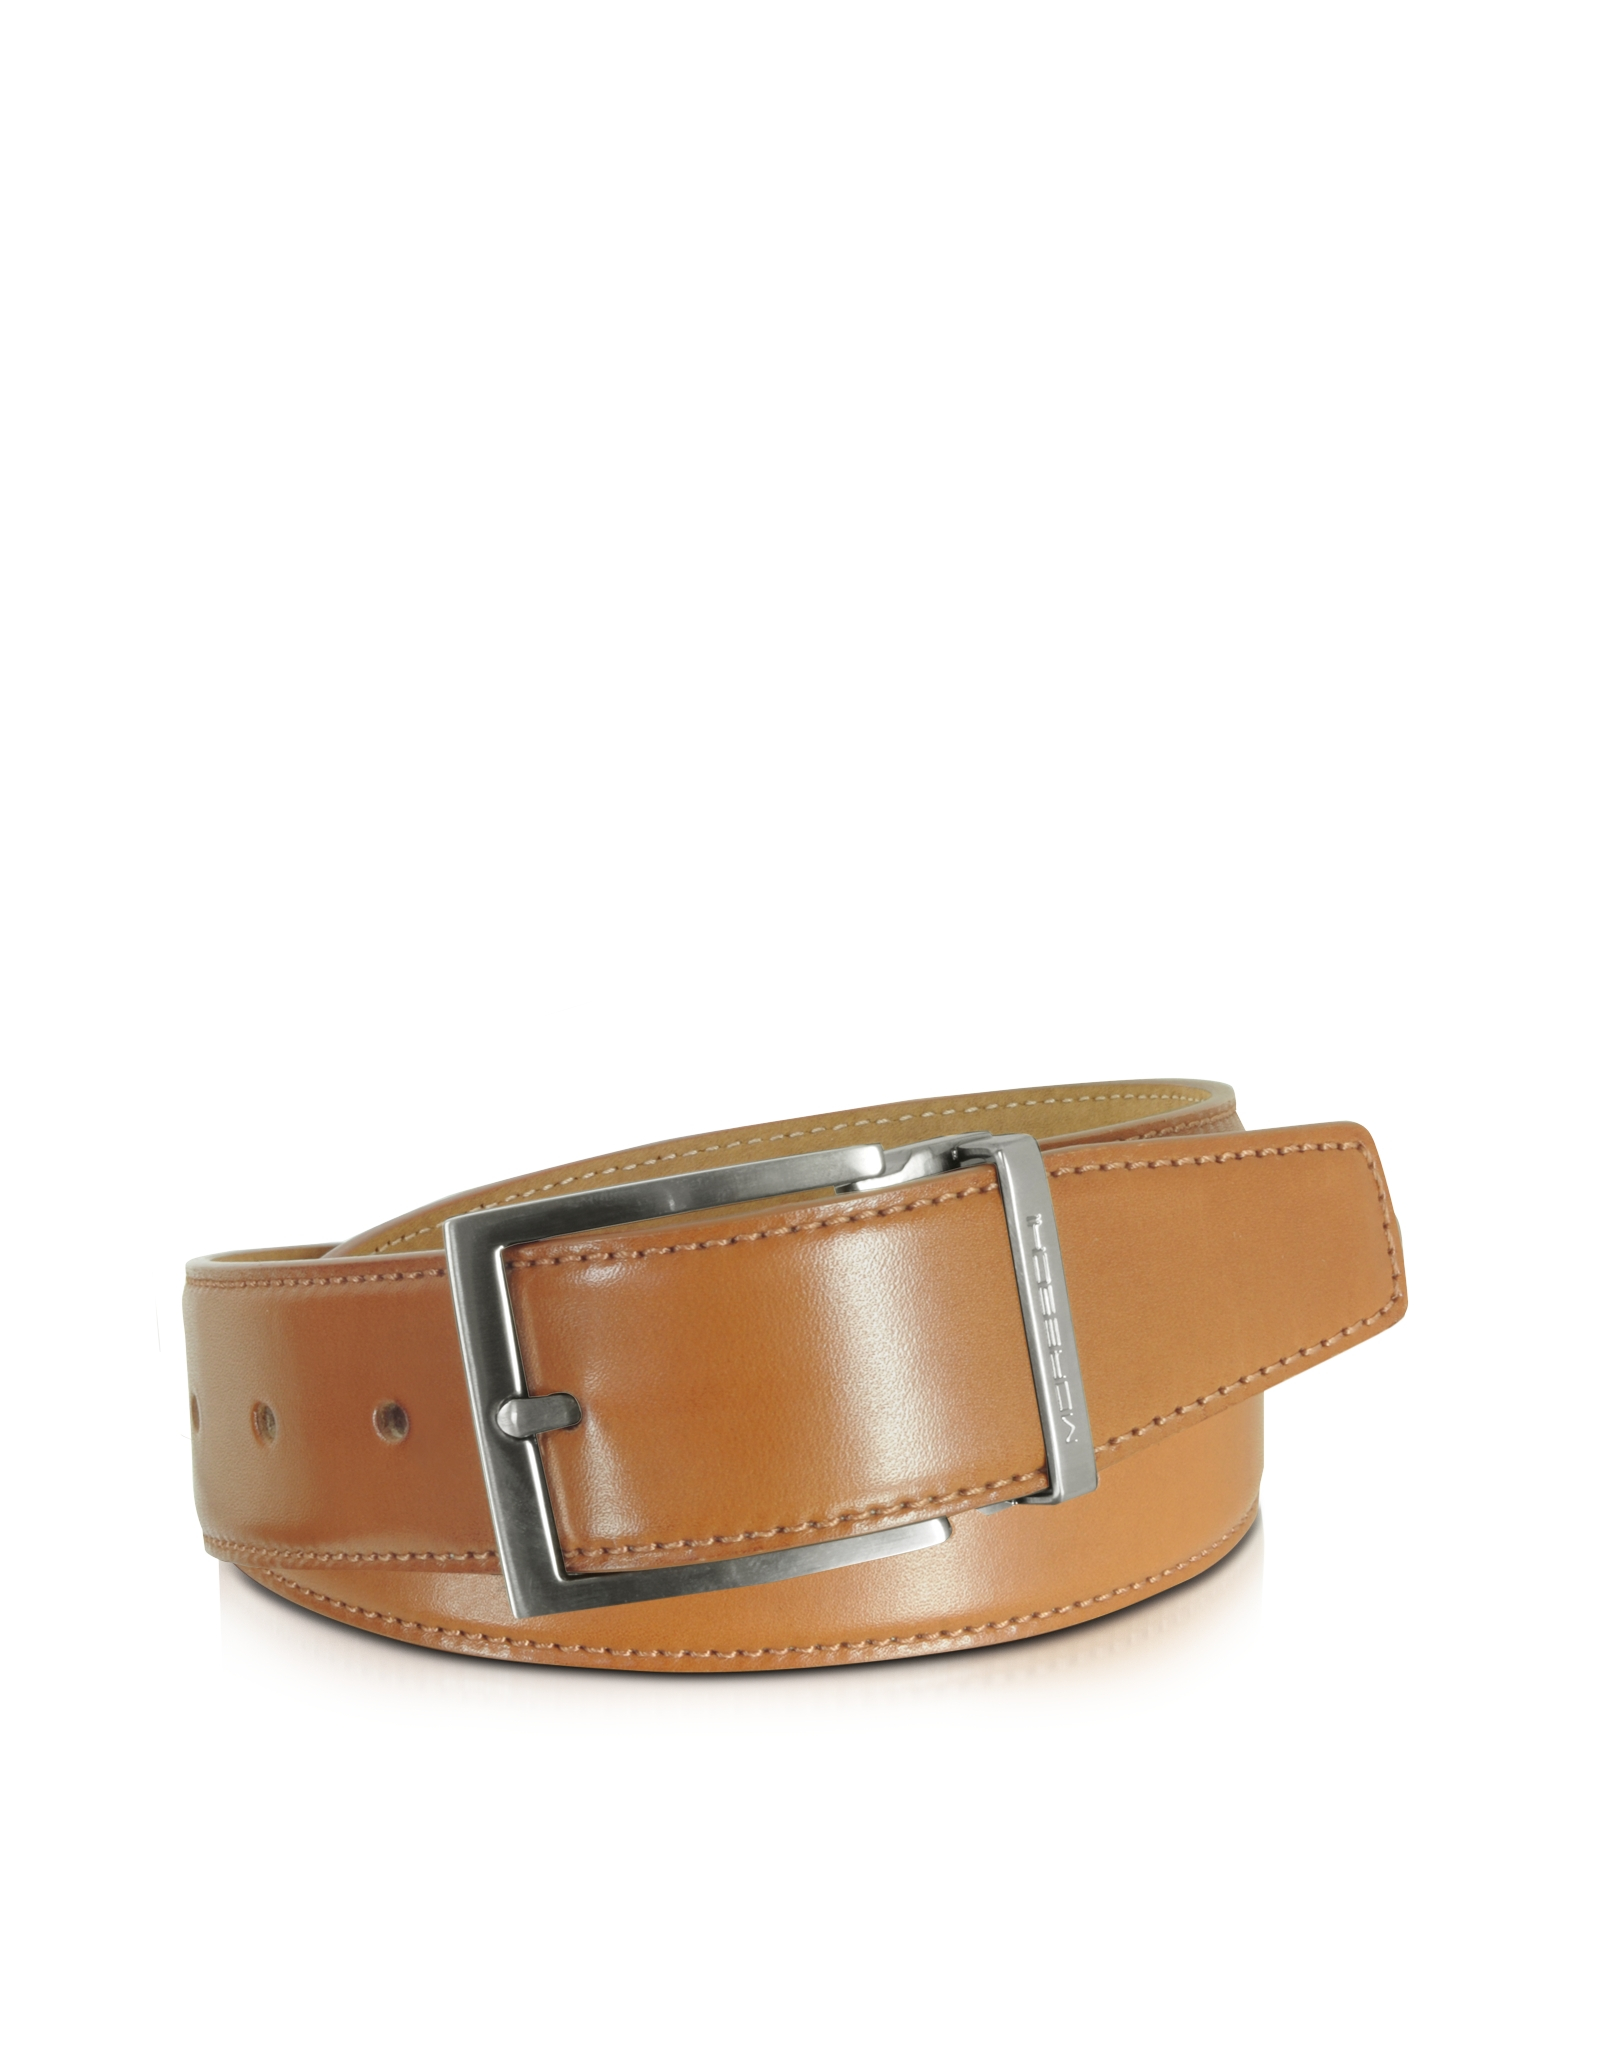 Belts Nothing completes a man's look quite like the perfect belt. Made with the same attention to detail that goes into our shoes, our belts feature the finest leathers and are specifically designed to complement our shoe styles.